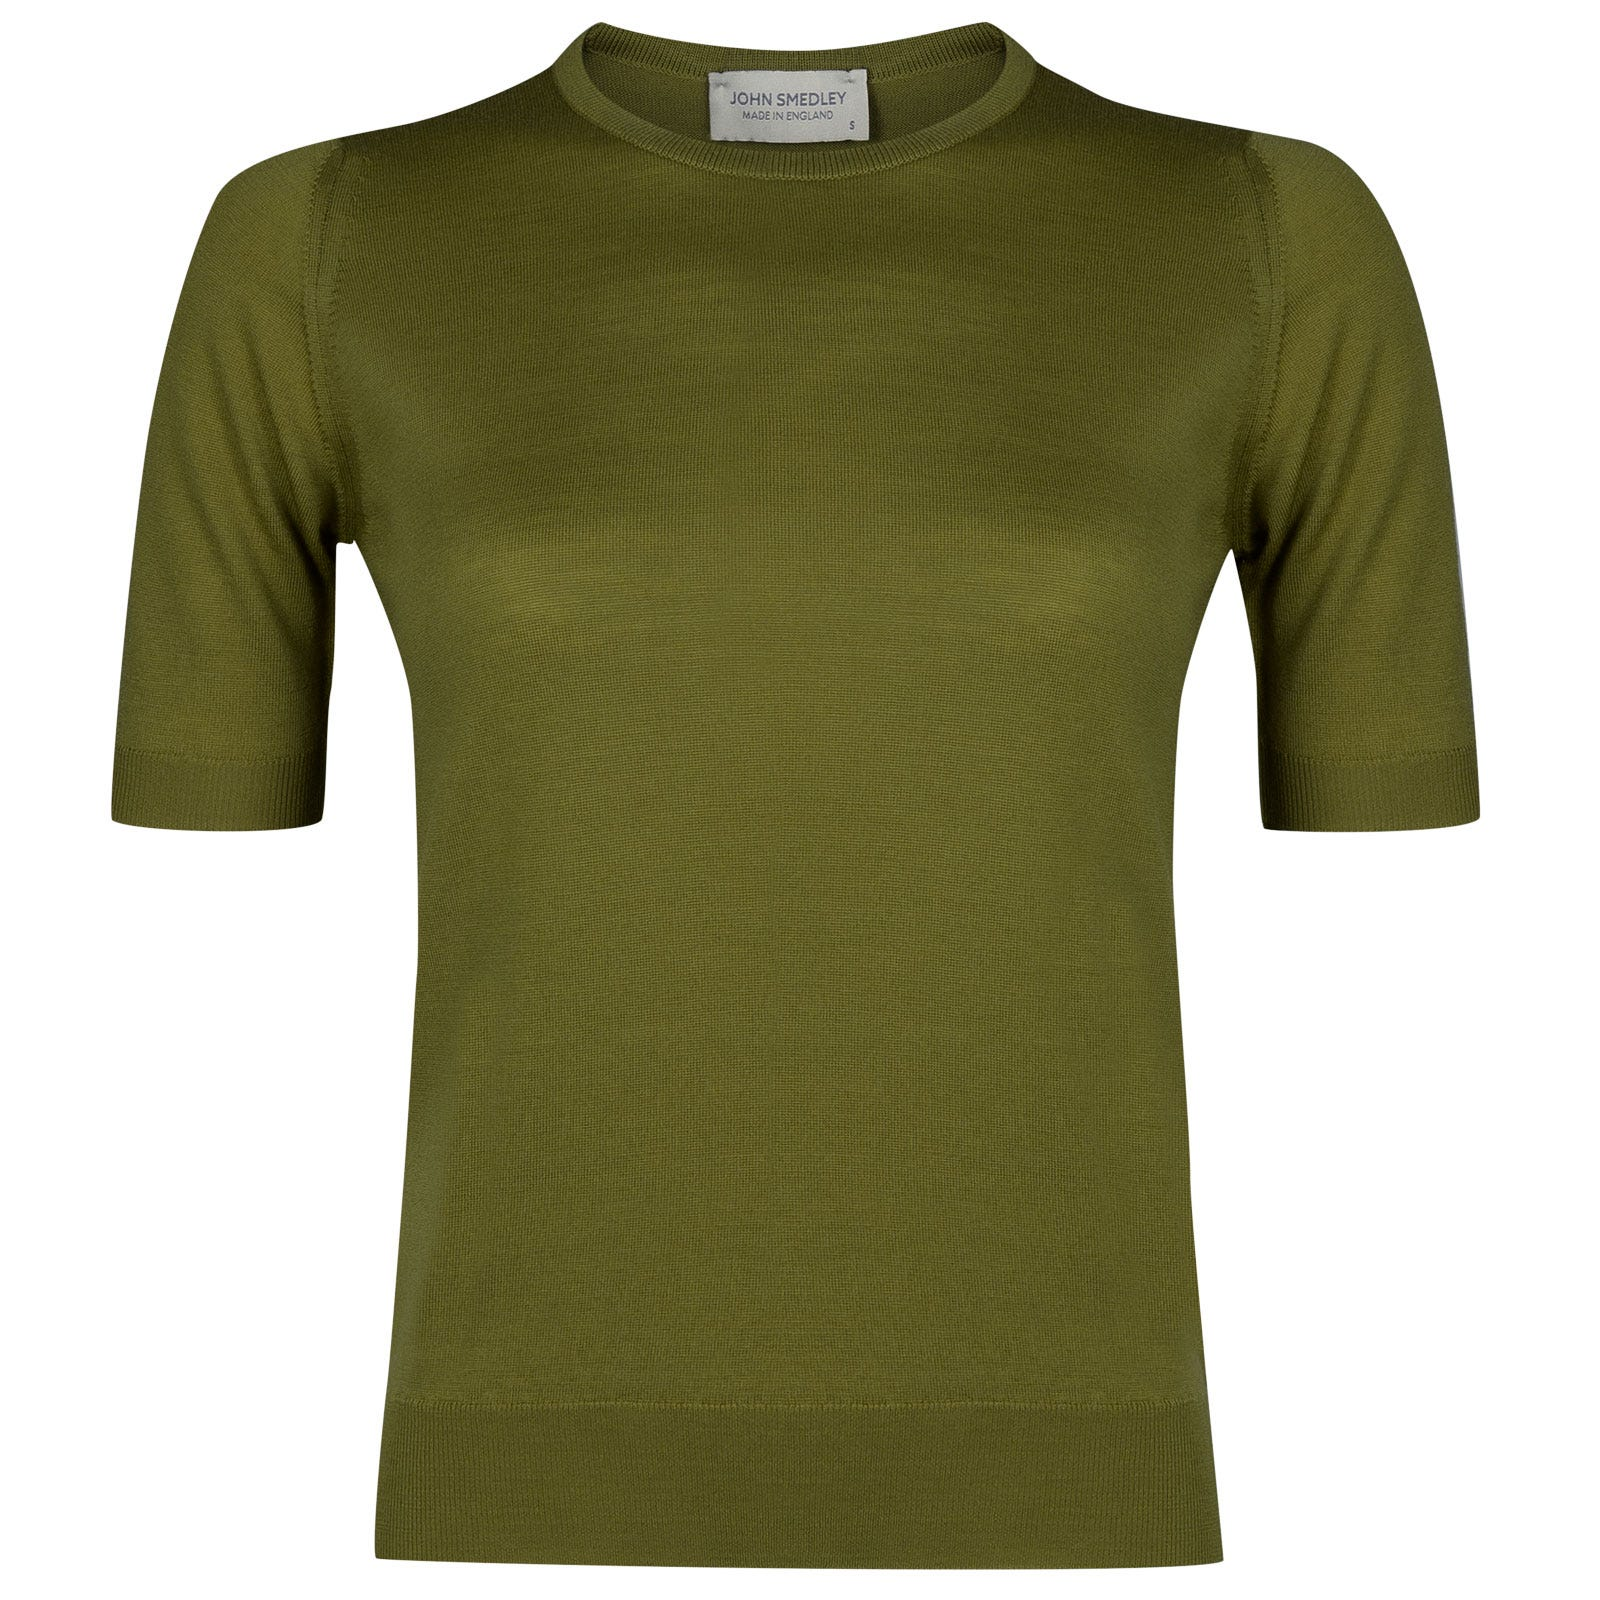 John Smedley trieste Merino Wool Sweater in Lumsdale Green-M